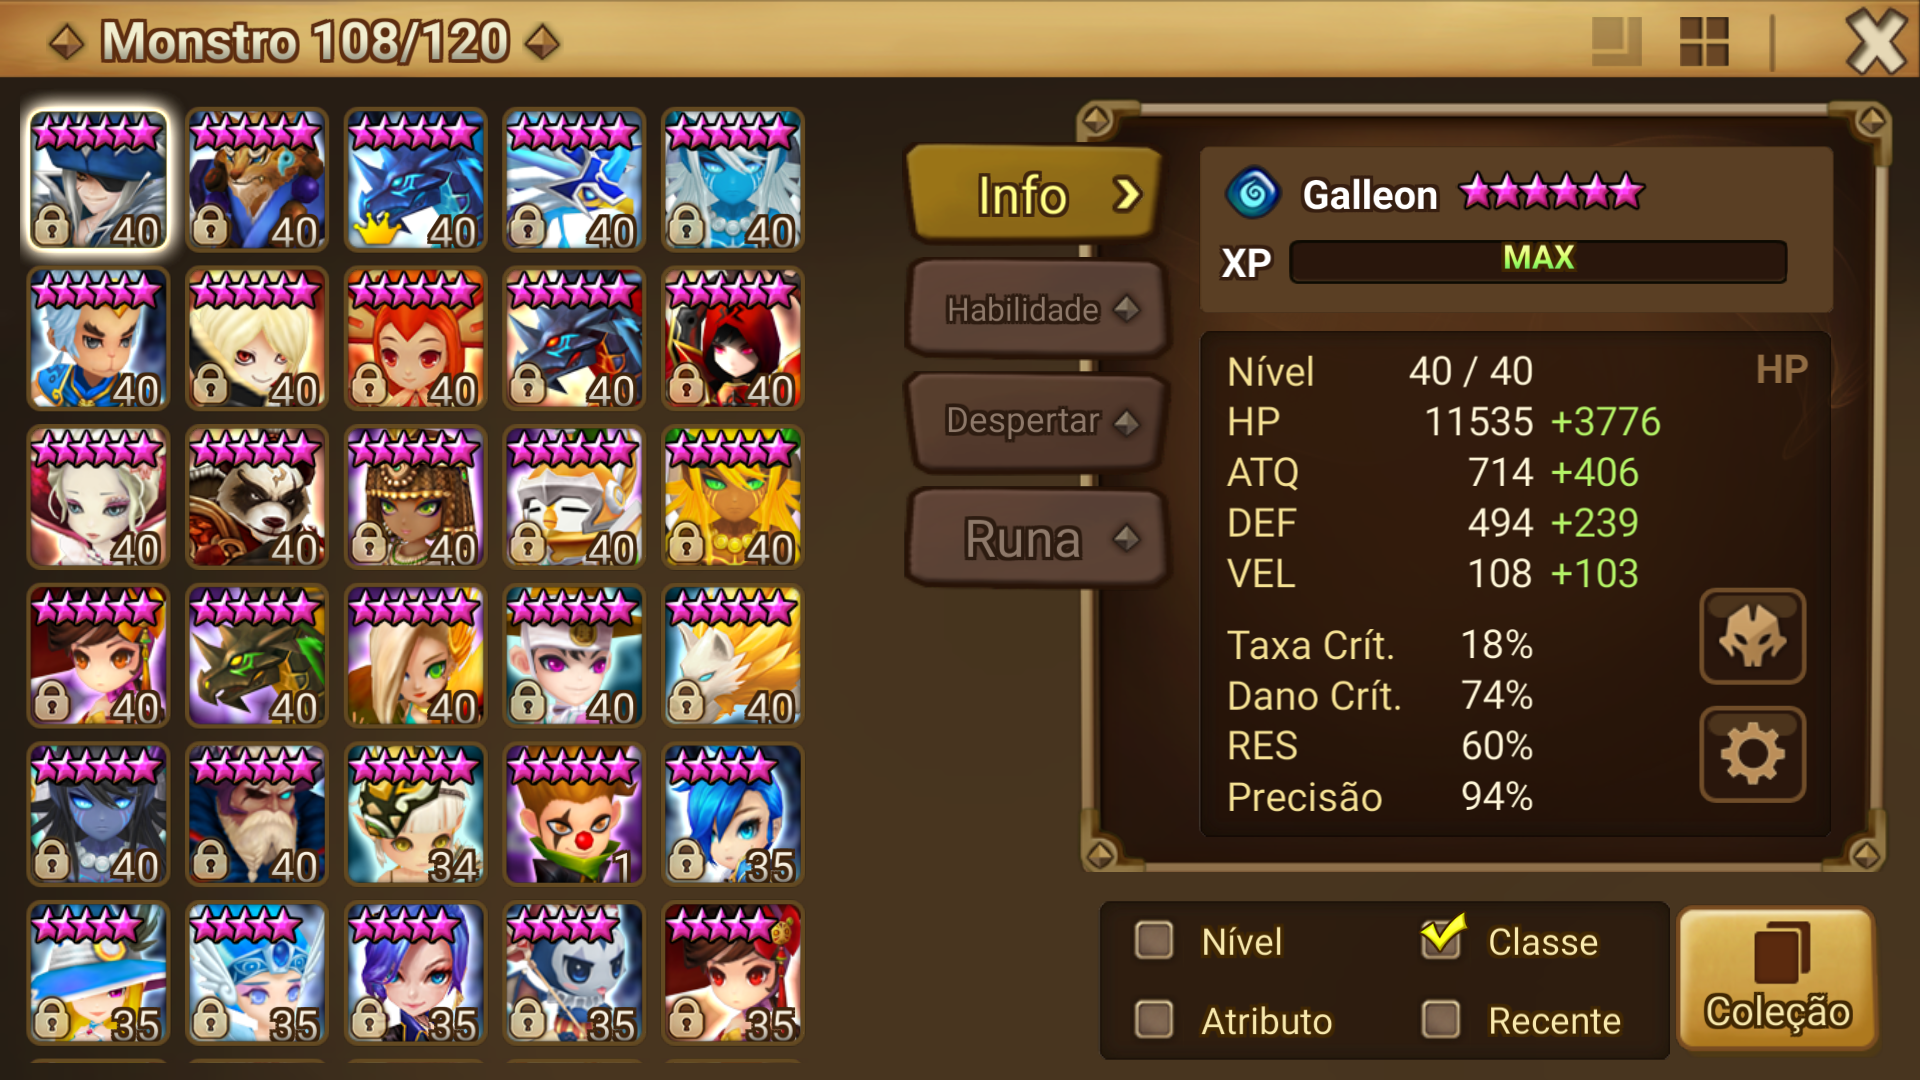 I need a team to db10 and necro b10